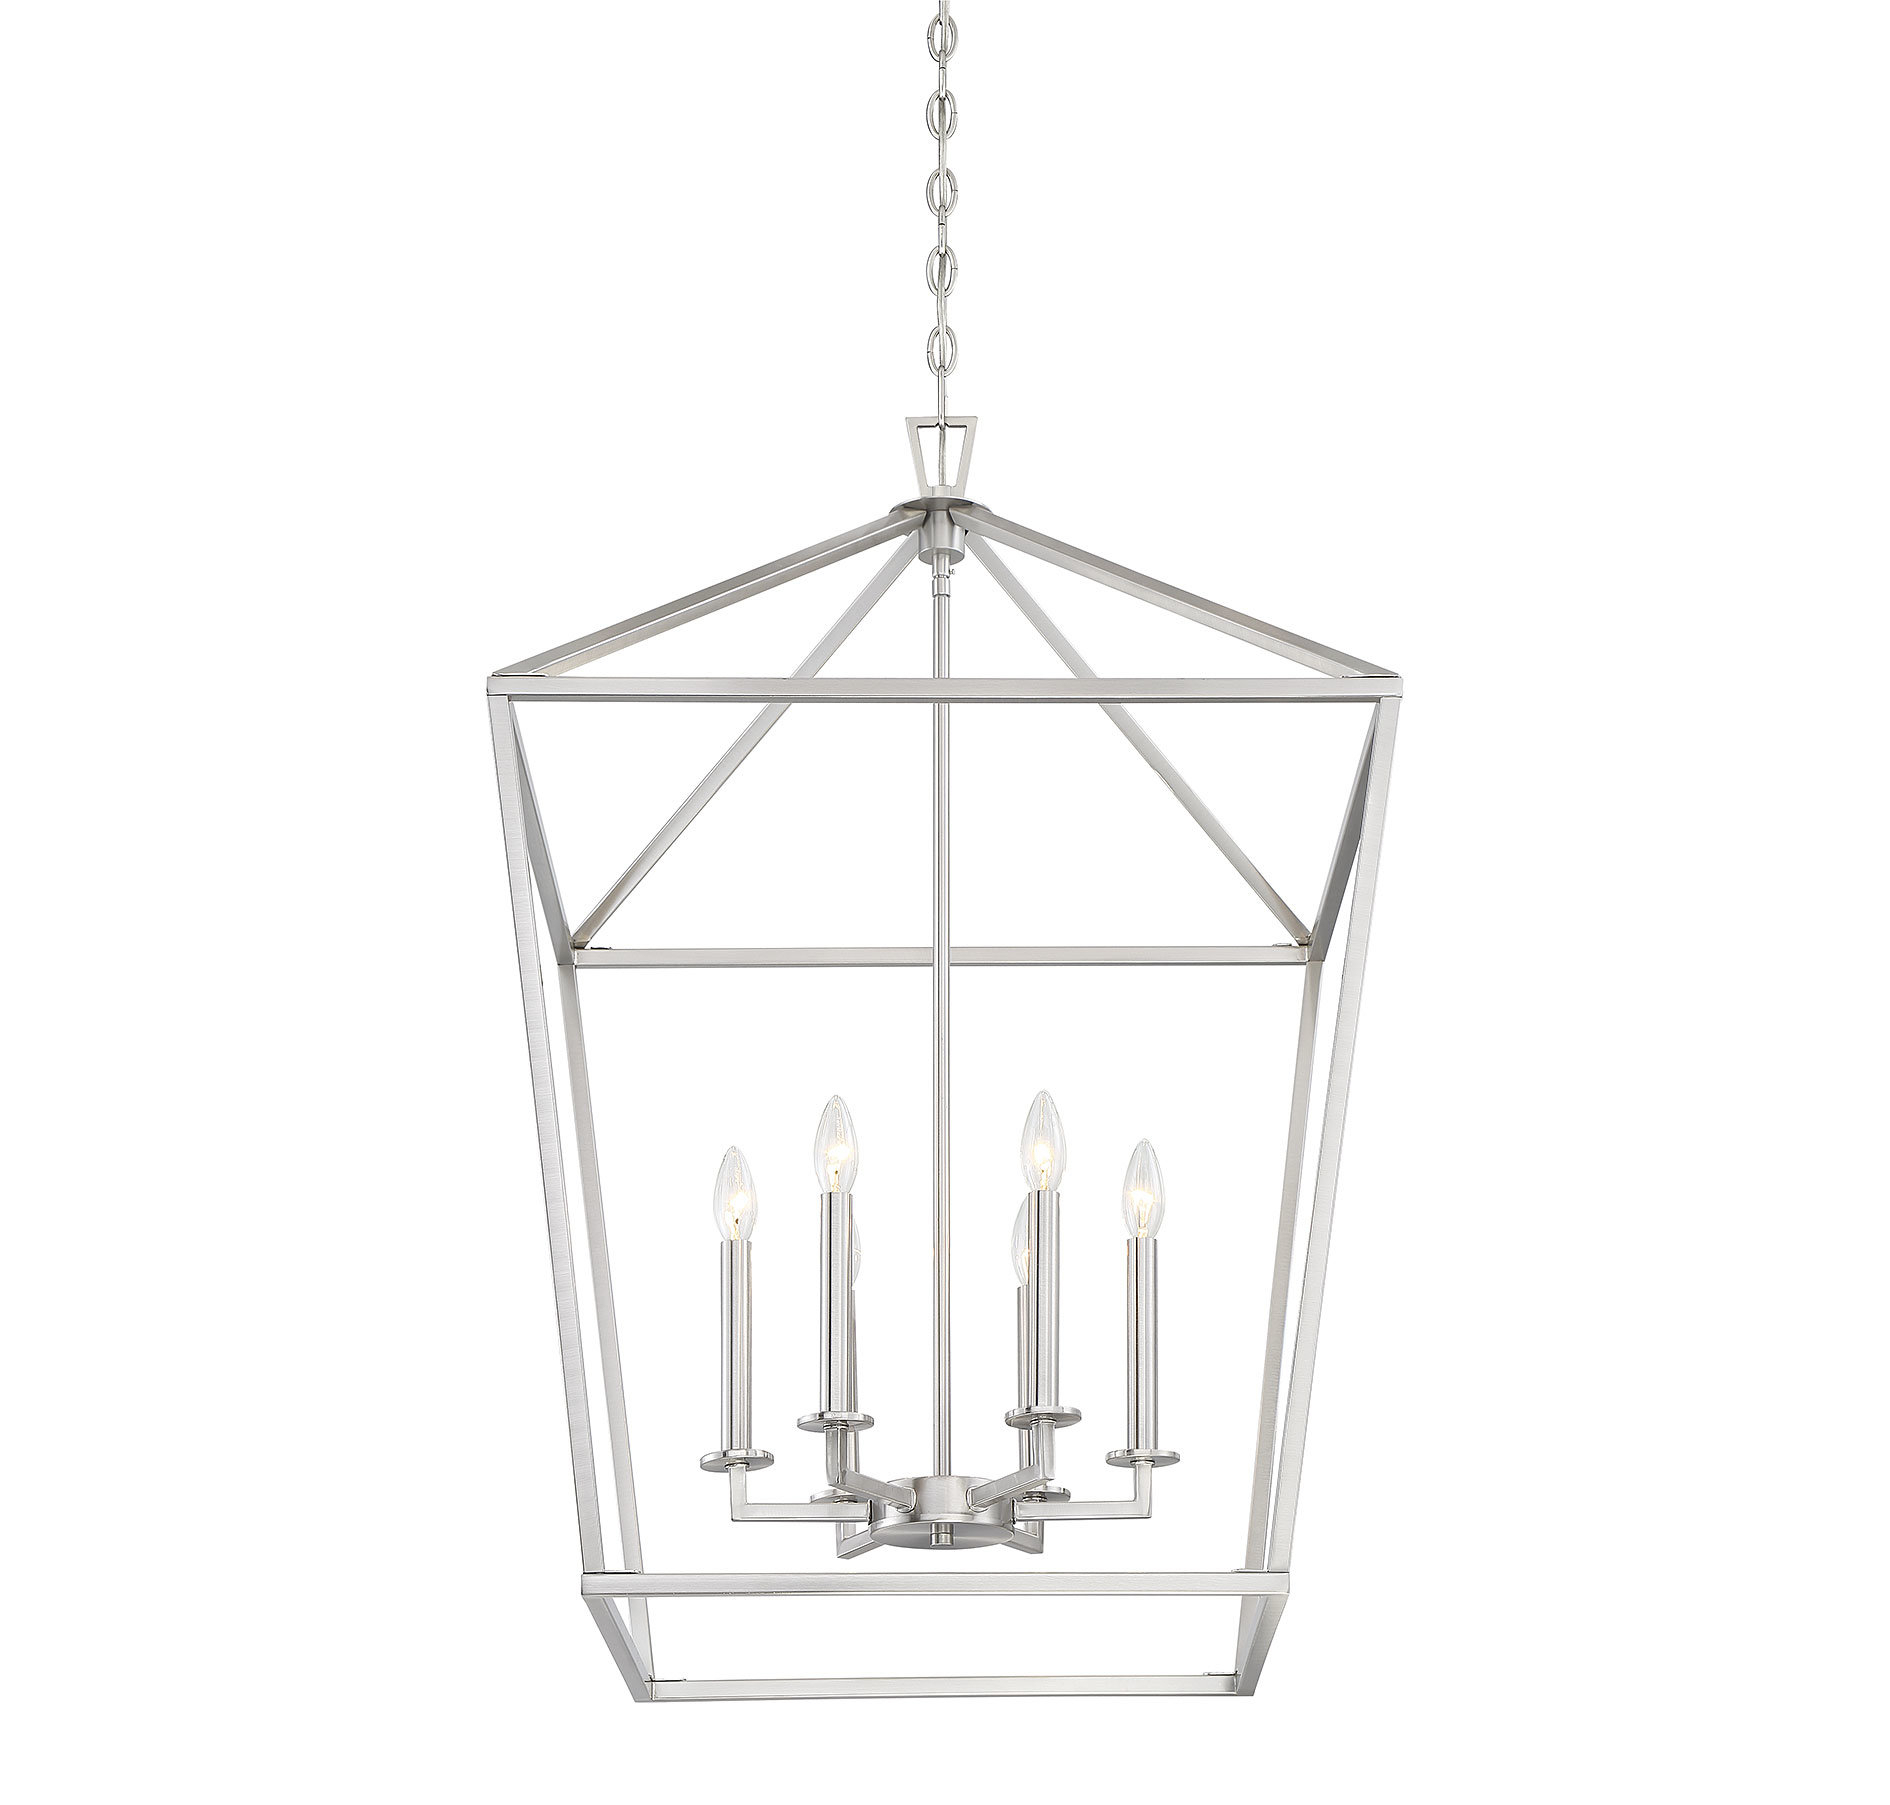 Birch Lane™ Heritage Israel 6-Light Lantern Geometric Pendant pertaining to Armande 3-Light Lantern Geometric Pendants (Image 10 of 30)